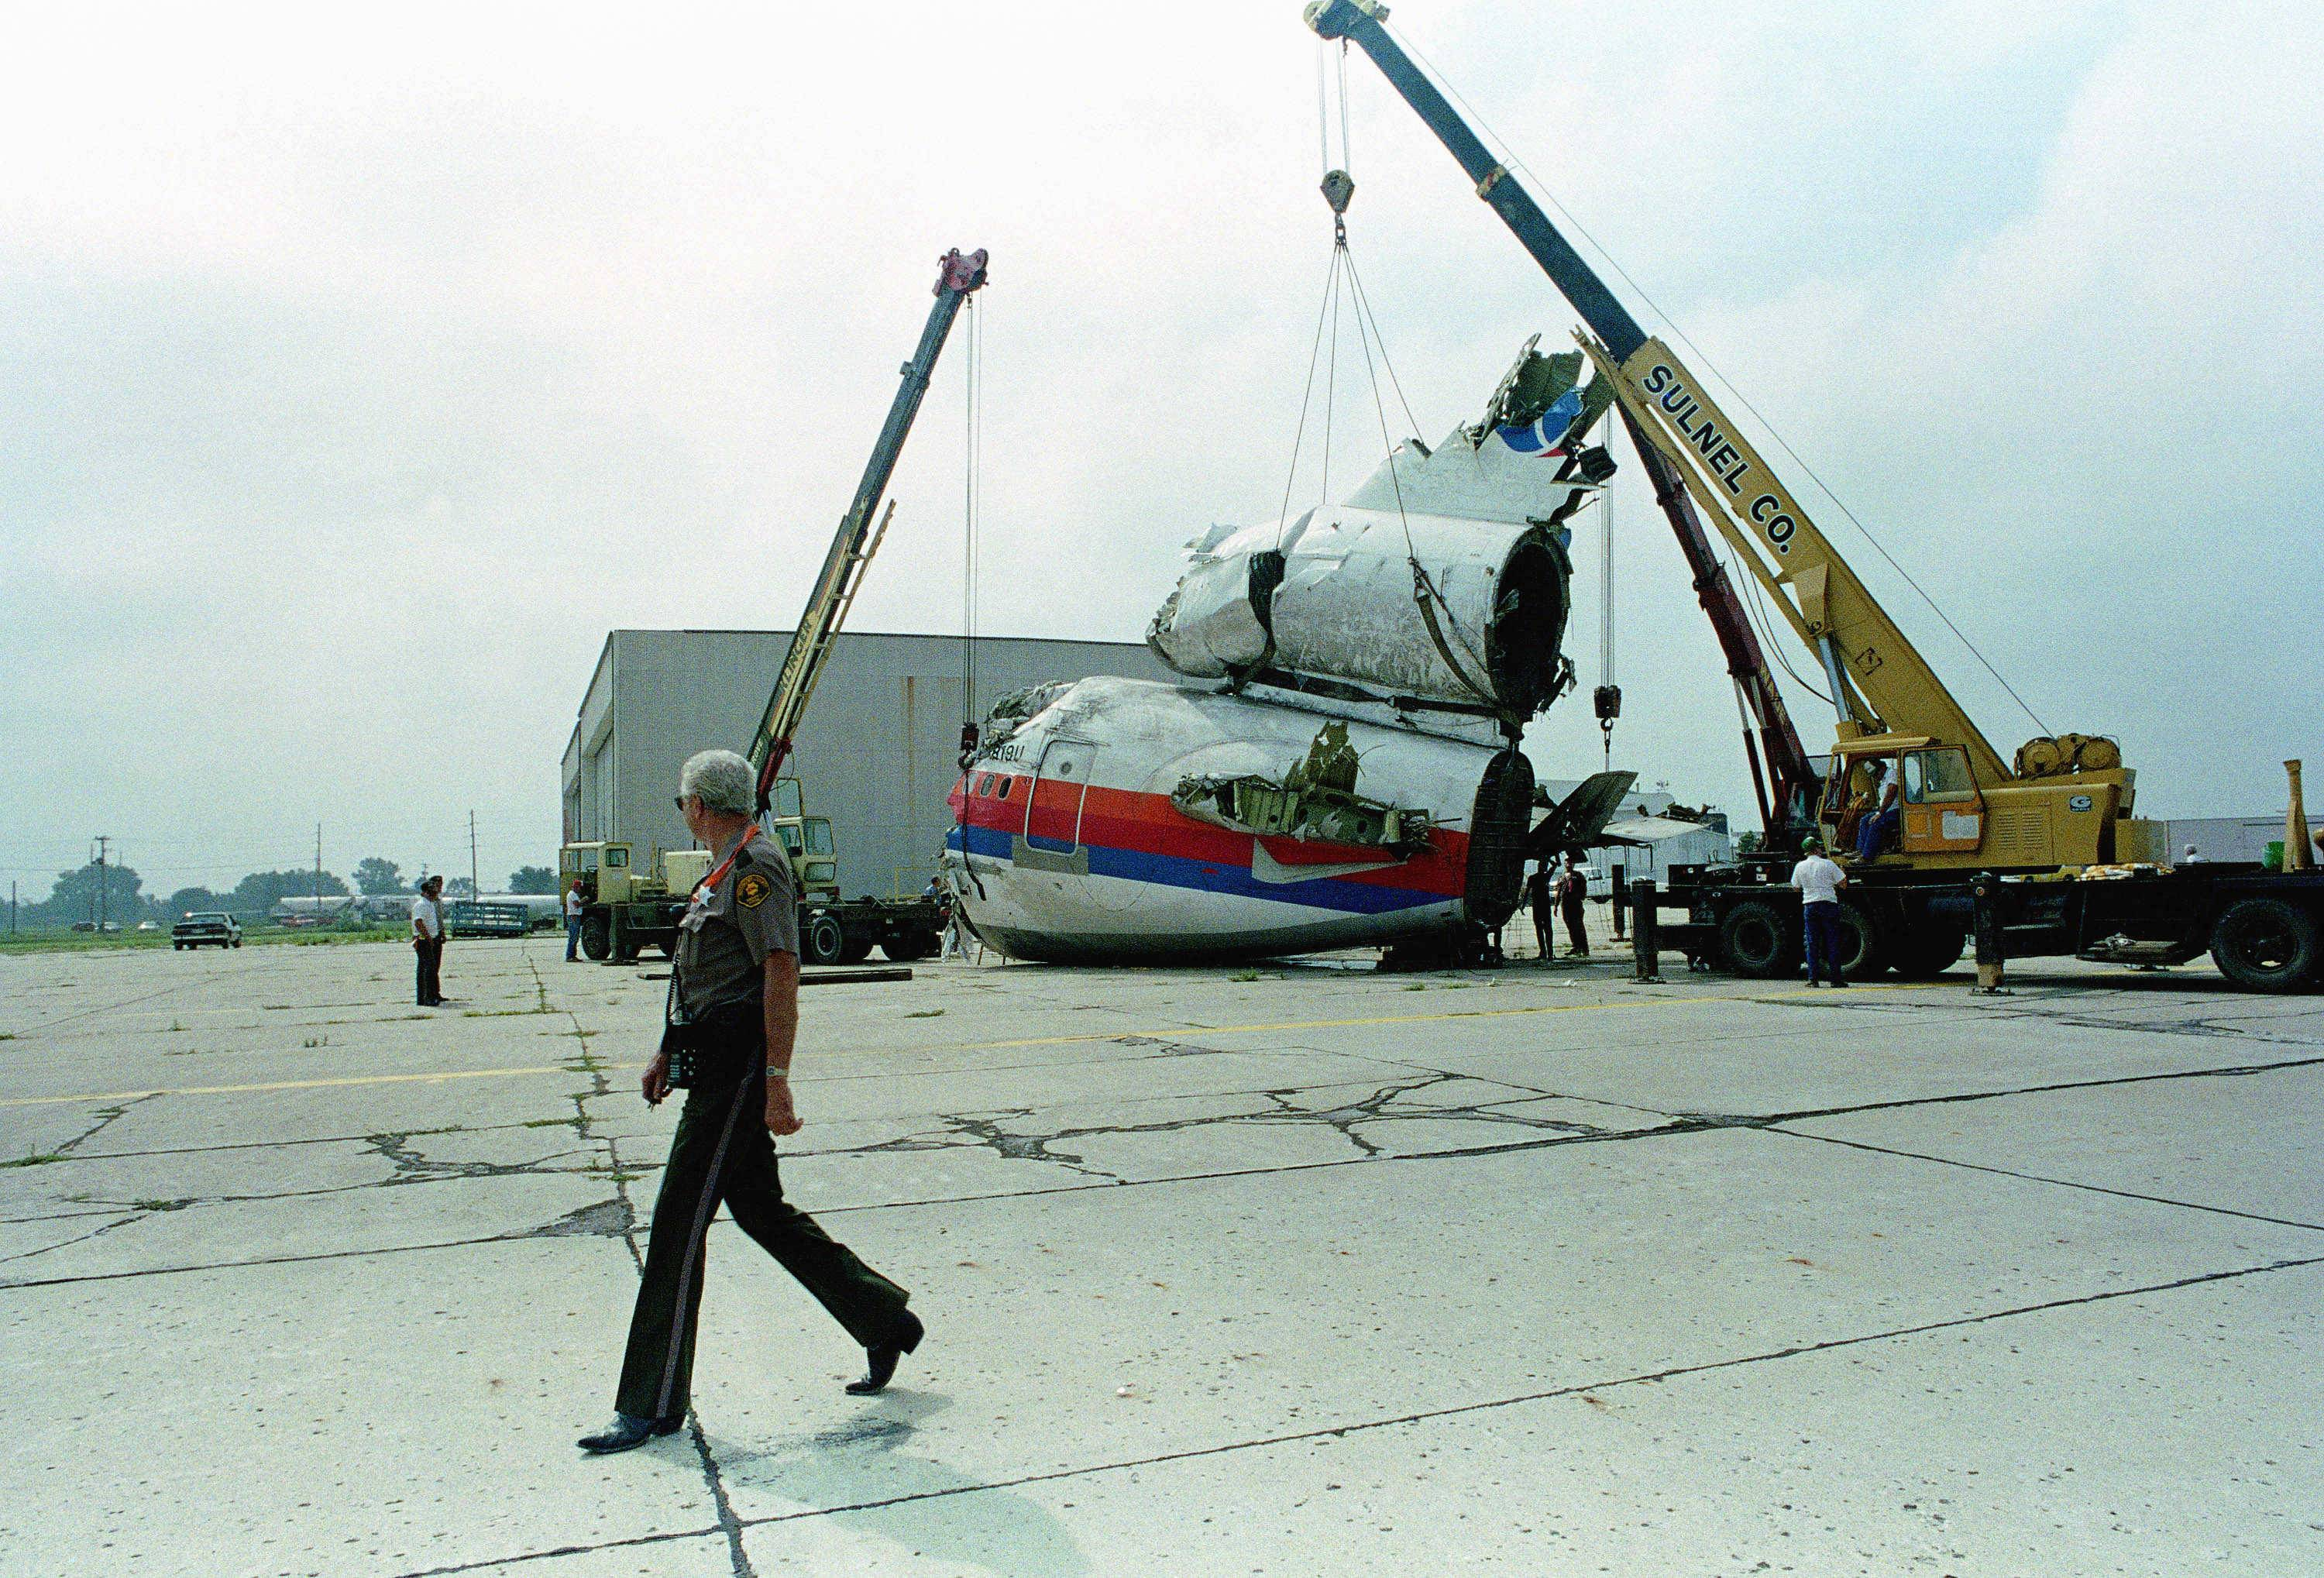 Cranes hold the tail section of the United Airlines DC-10 upright Sunday, July 23, 1989, four days after it crash landed at the Sioux City Airport in Iowa, killing 110 people. The section will later be loaded on a flatbed truck for transportation to an inspection site.